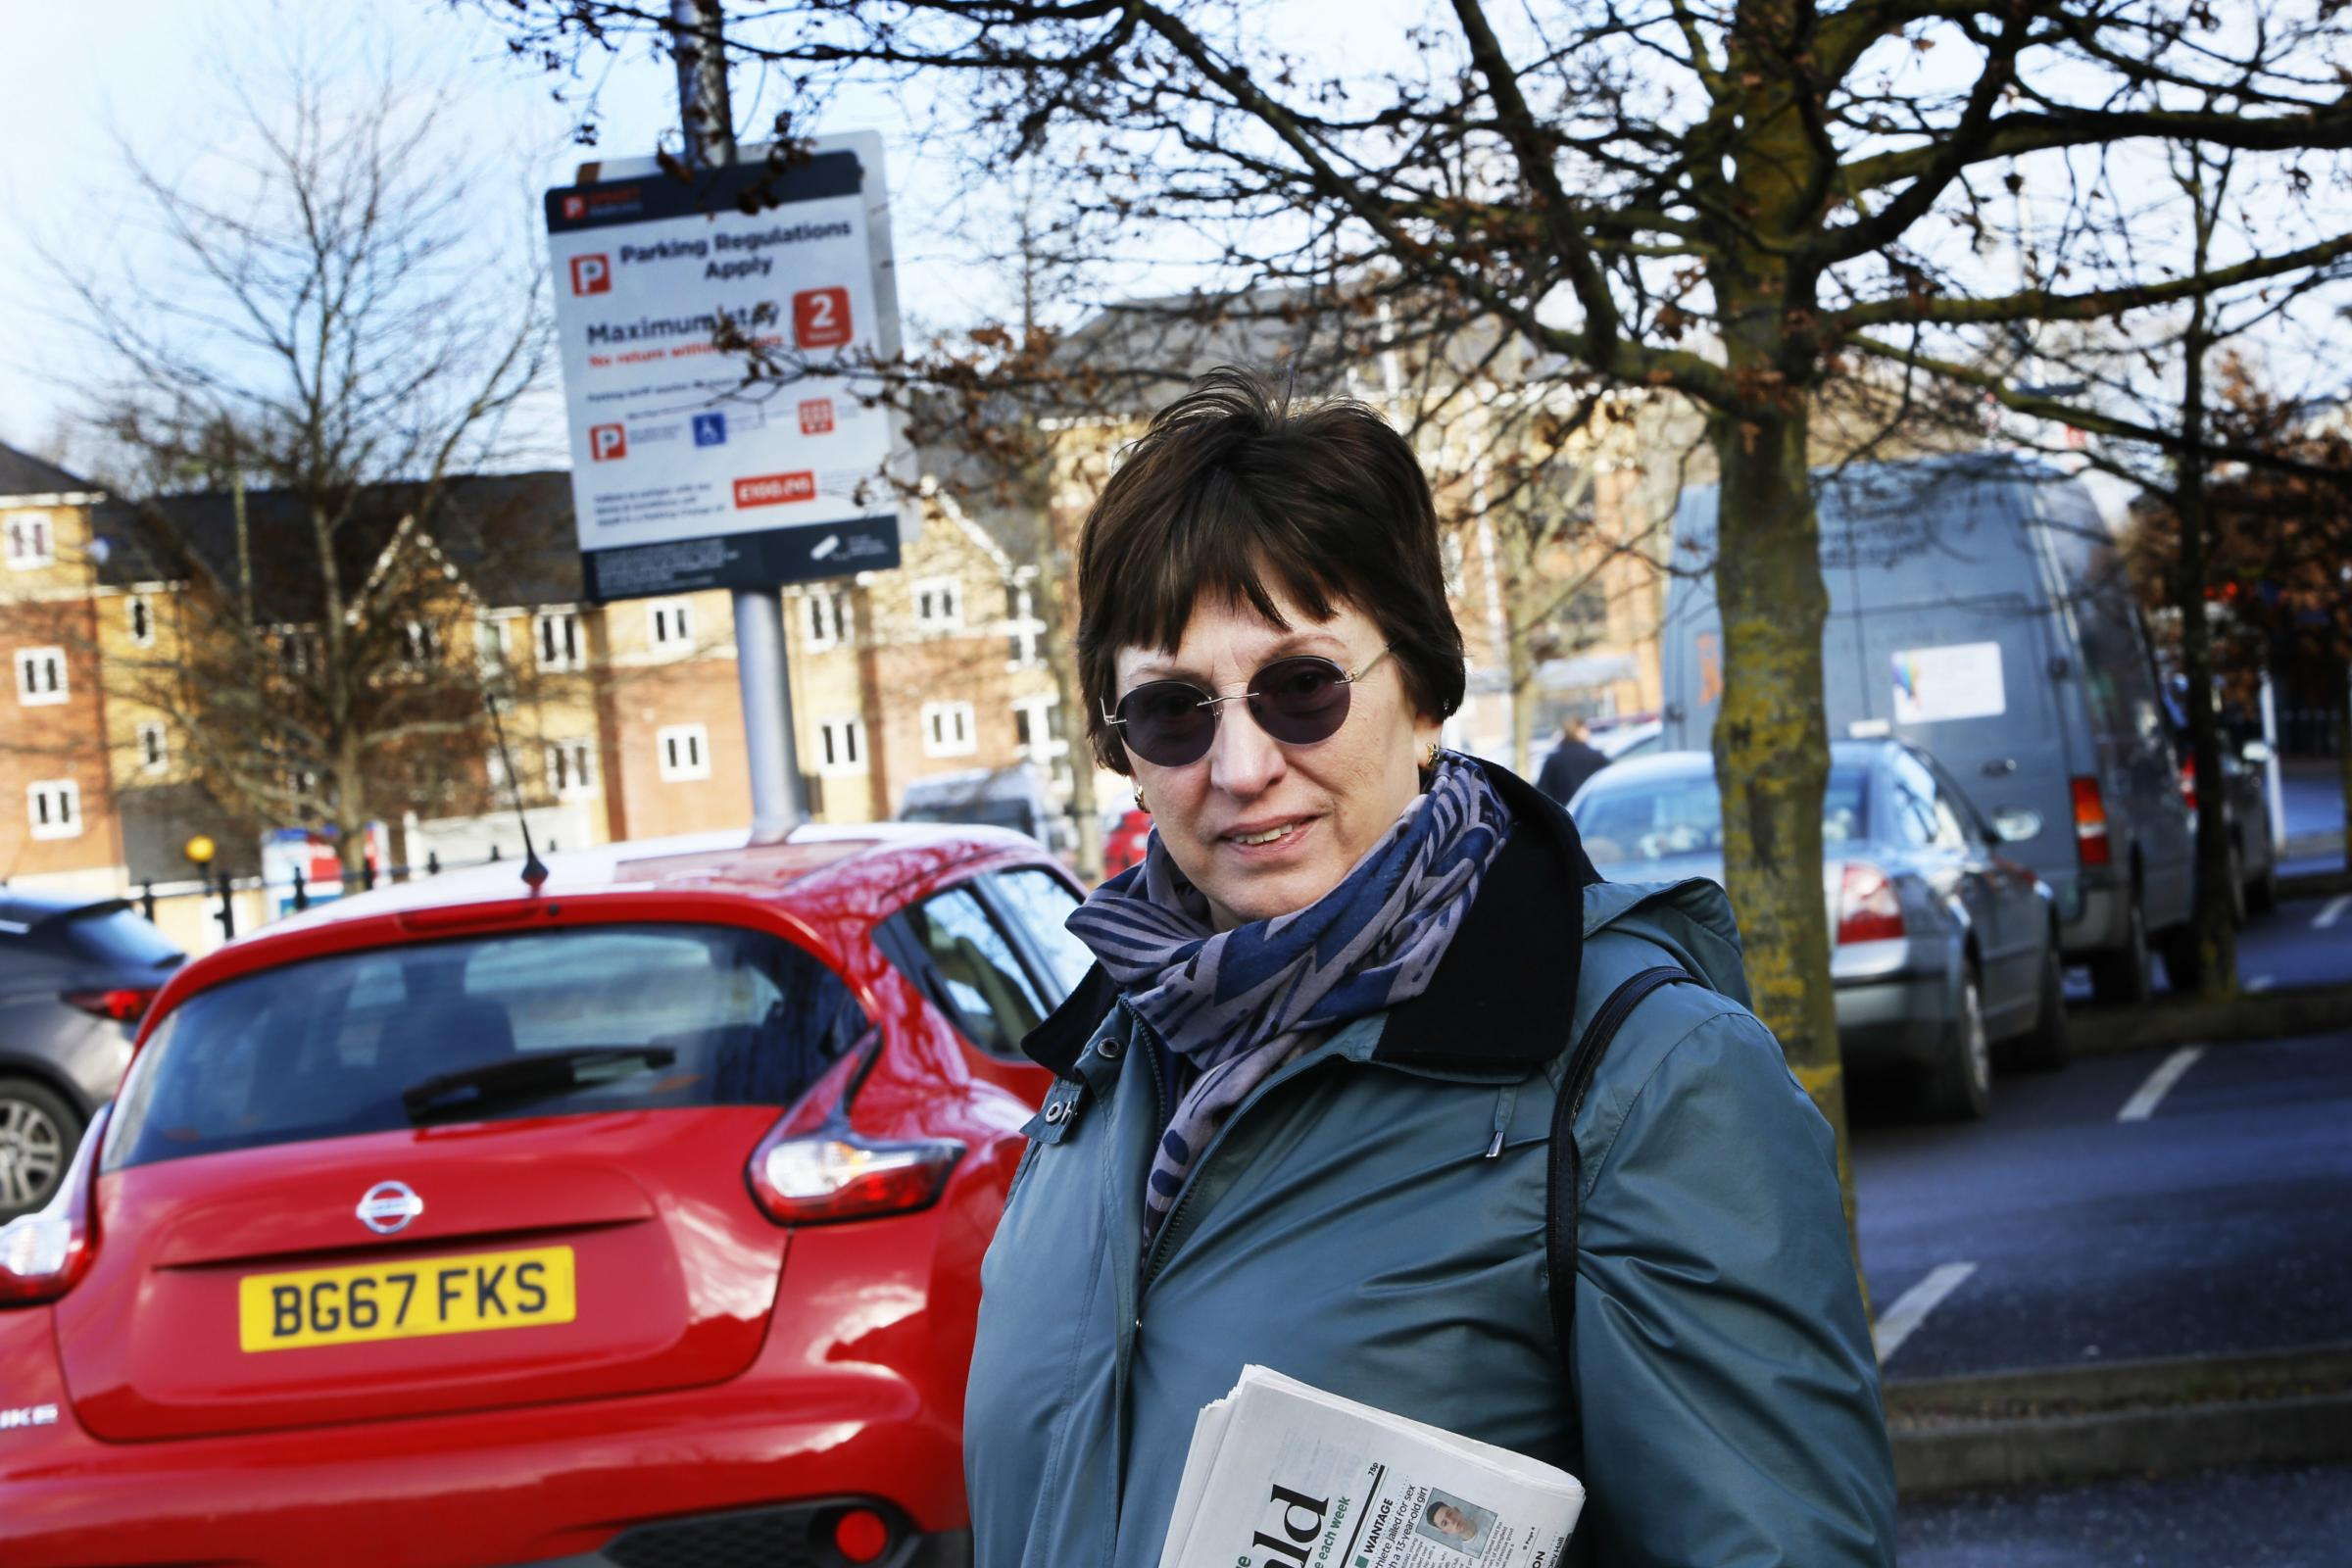 Julie Mabberley of the Wantage and Grove Campaign Group raising awareness about local parking in 2018. Picture: Ed Nix